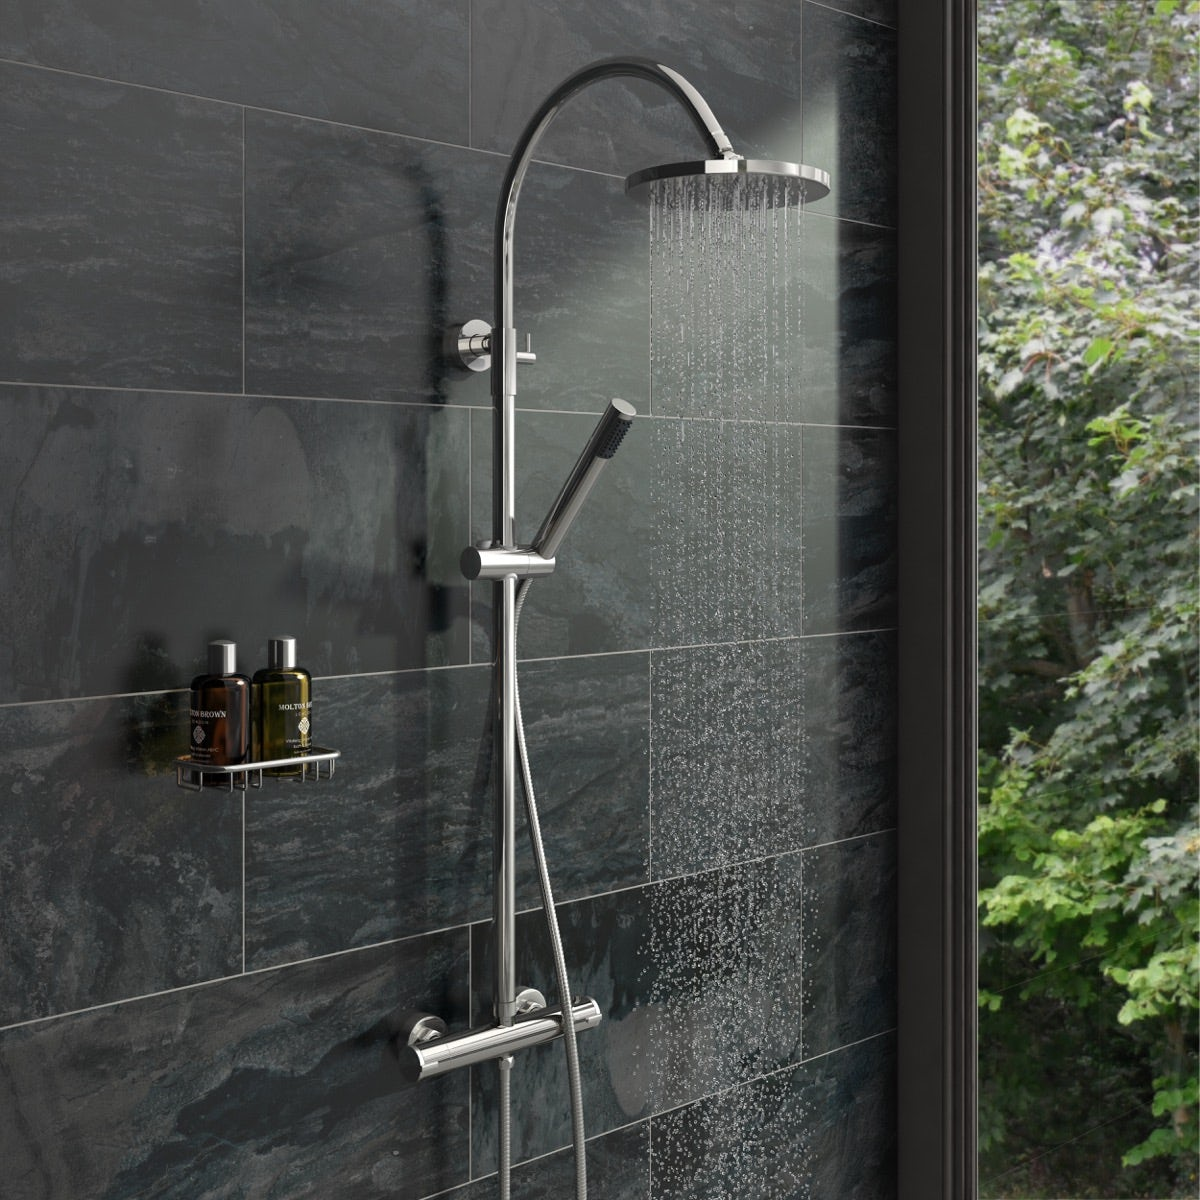 Derwent Round Head Shower Riser System